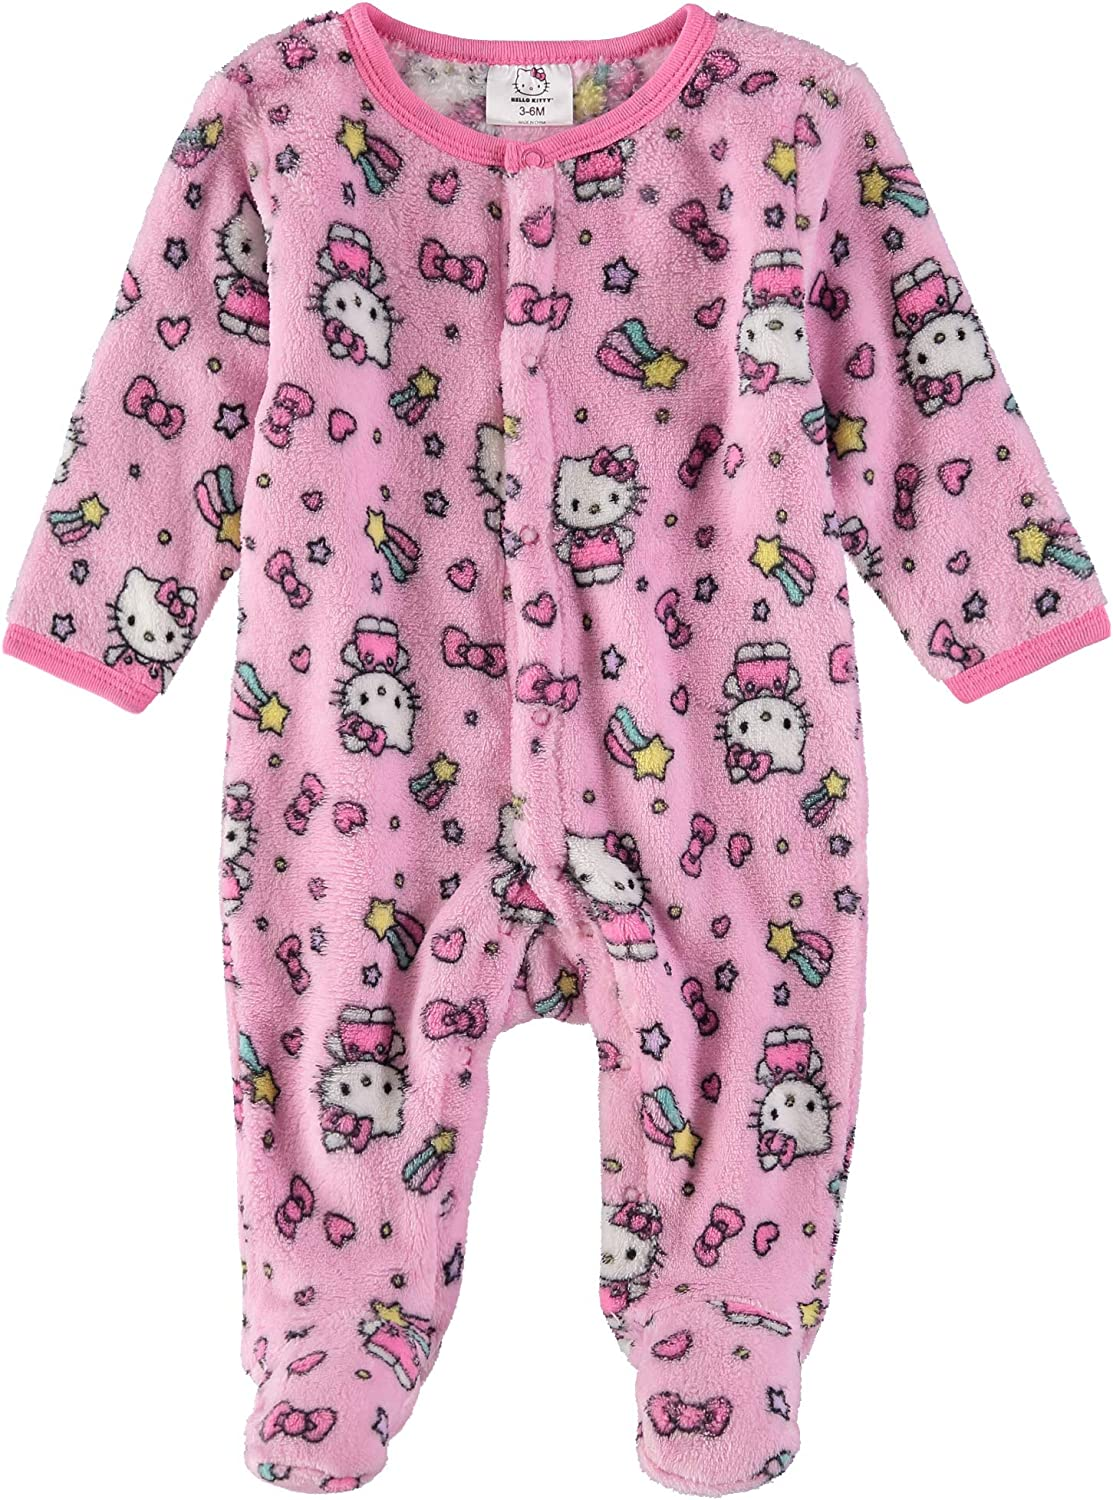 Hello Kitty Infant Baby Girls Fleece Footed Pajamas - Sleep and Play Footie Pink